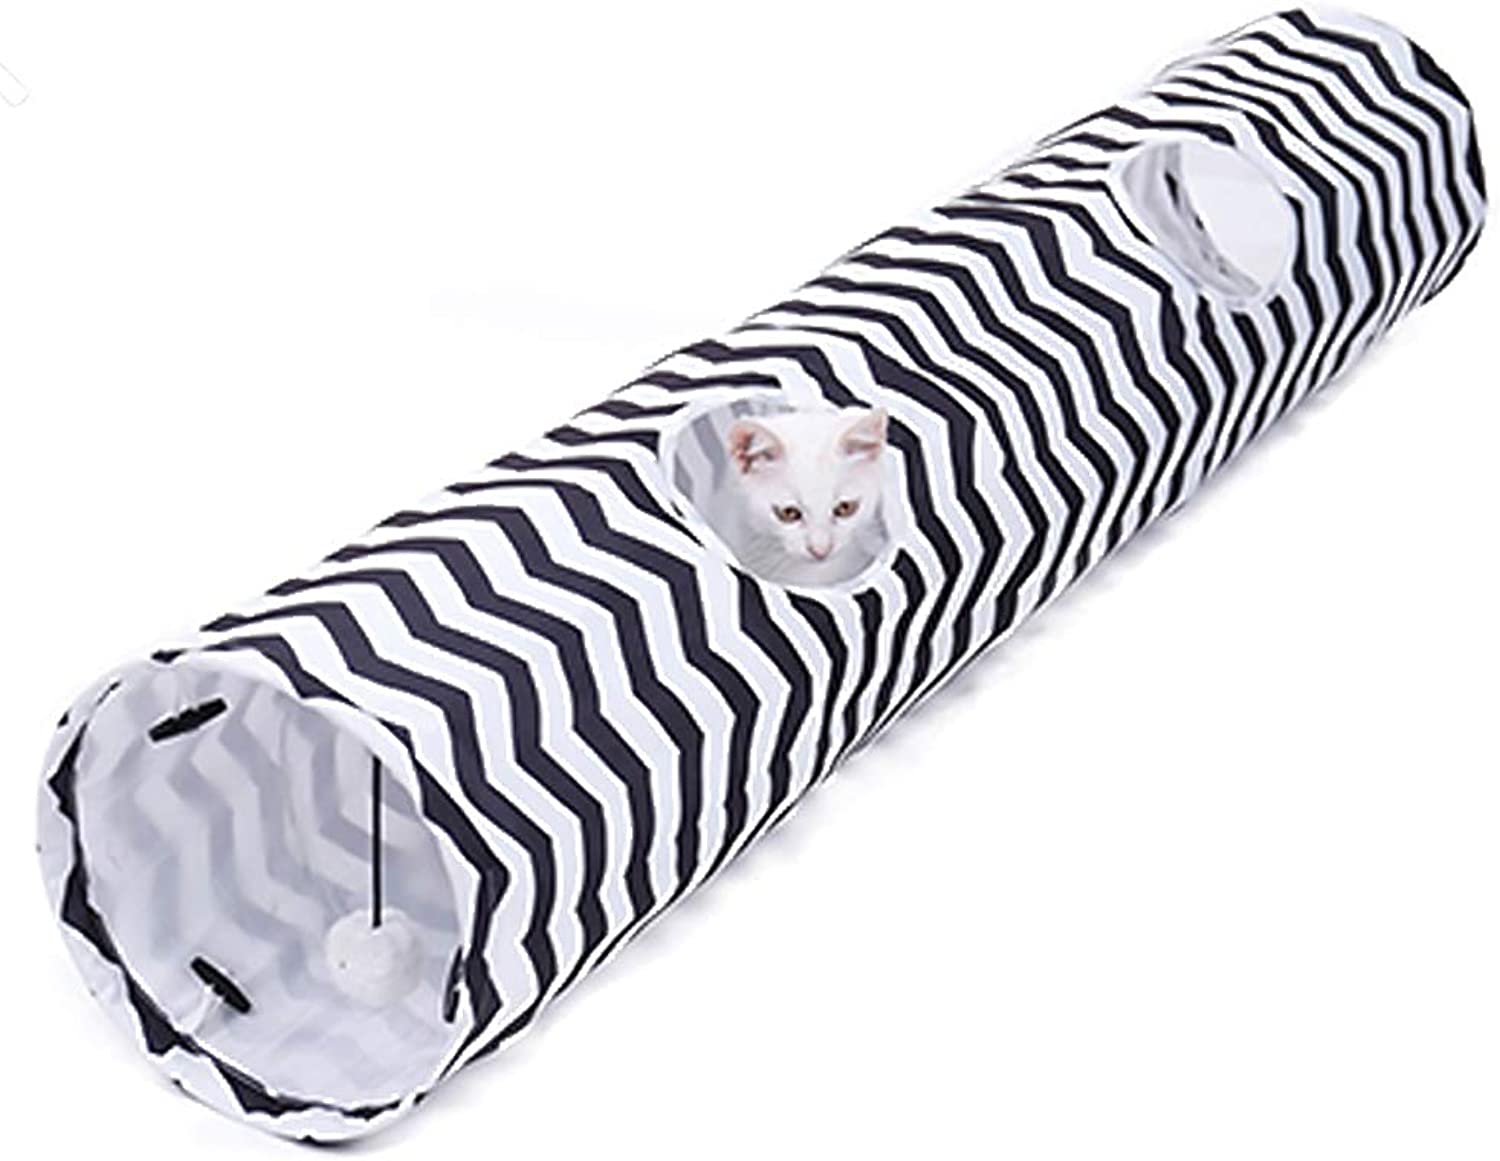 Cat Tunnel,Portable Collapsible Pet Toy,Crinkle Peep Hole Pet White Black Striped Squeak Tunnel,Kitty Toys for Puzzle Exercising Hiding Training,130  25Cm